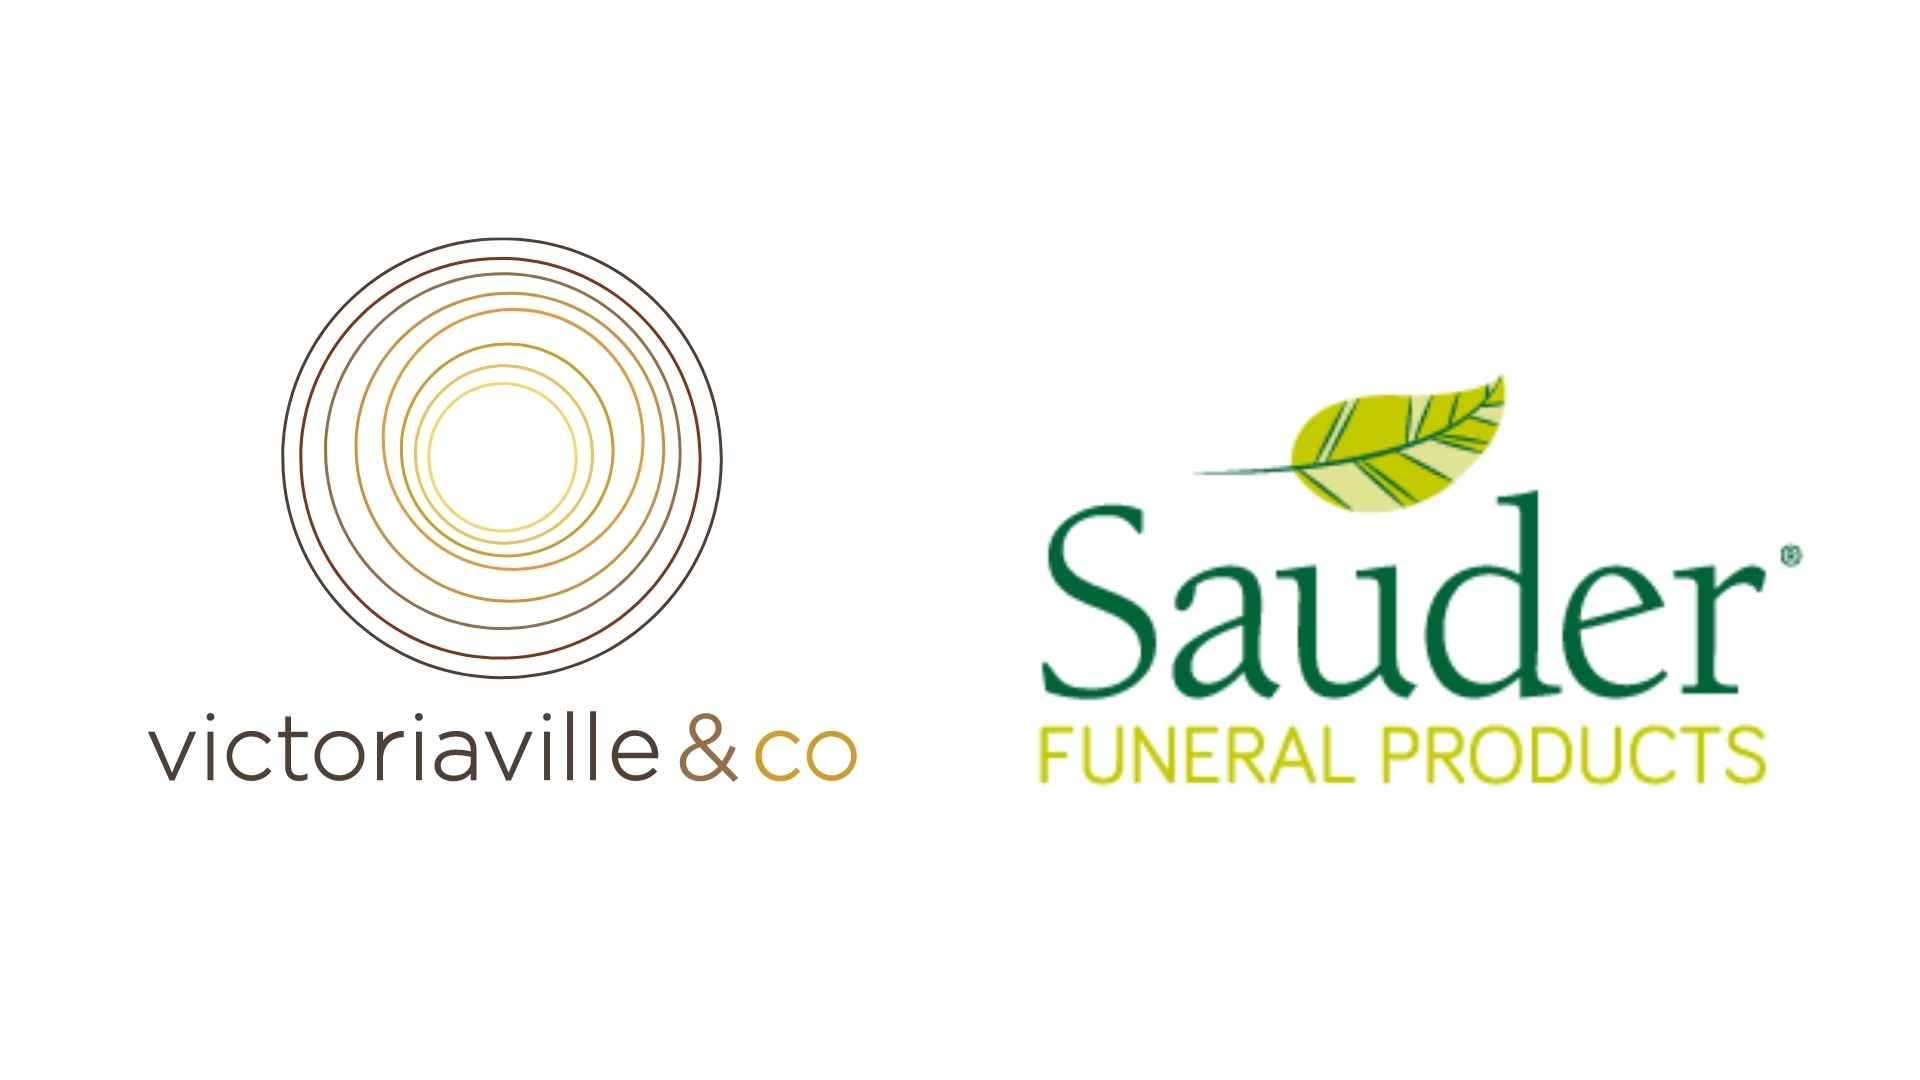 Victoriaville & Co. and Sauder Funeral Products   Strategic Investment and Partnership